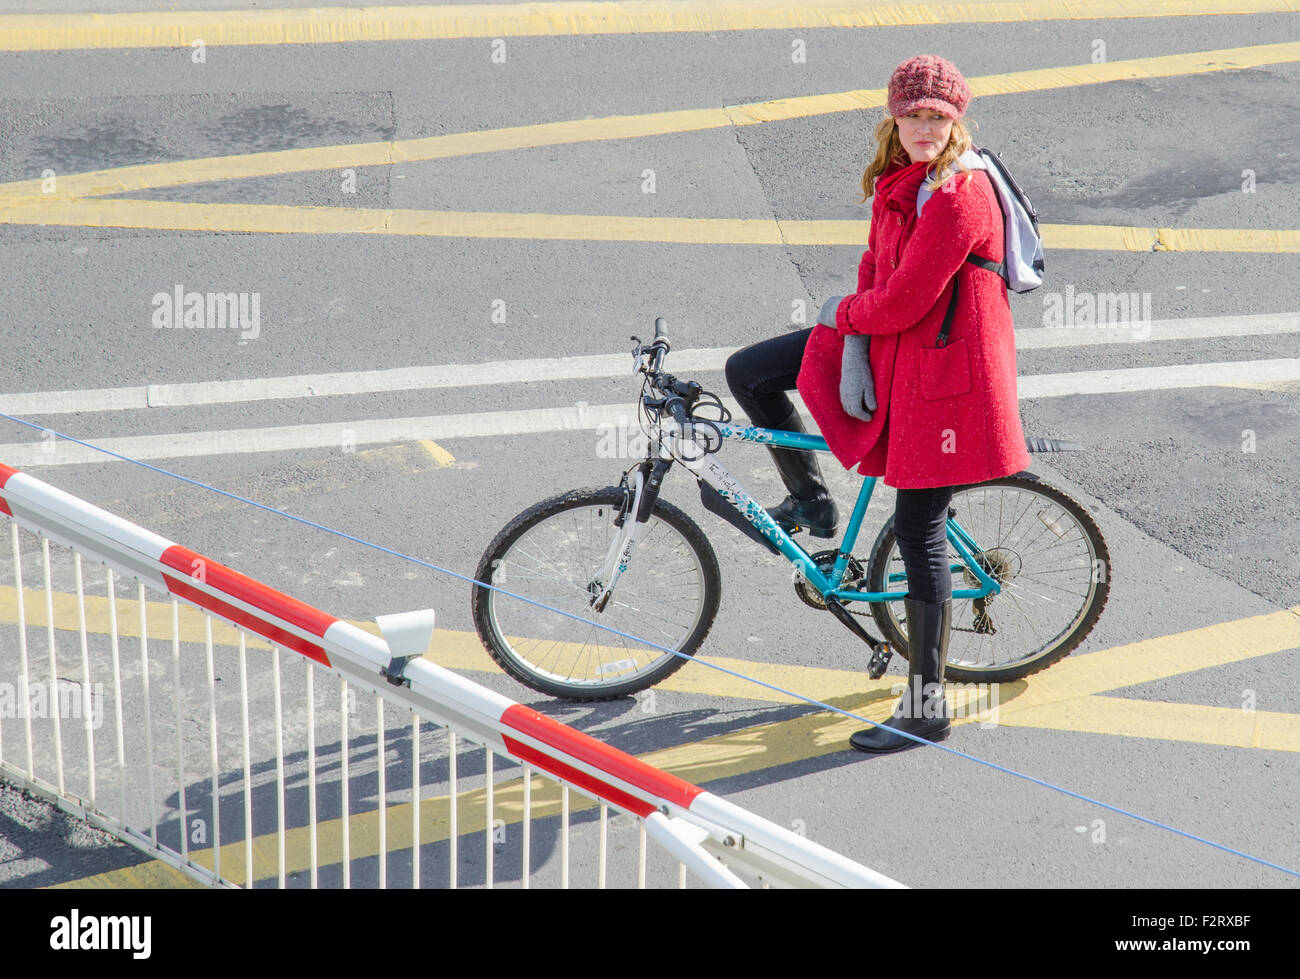 Girl on a bike waiting at the level crossing gates in England, UK. - Stock Image